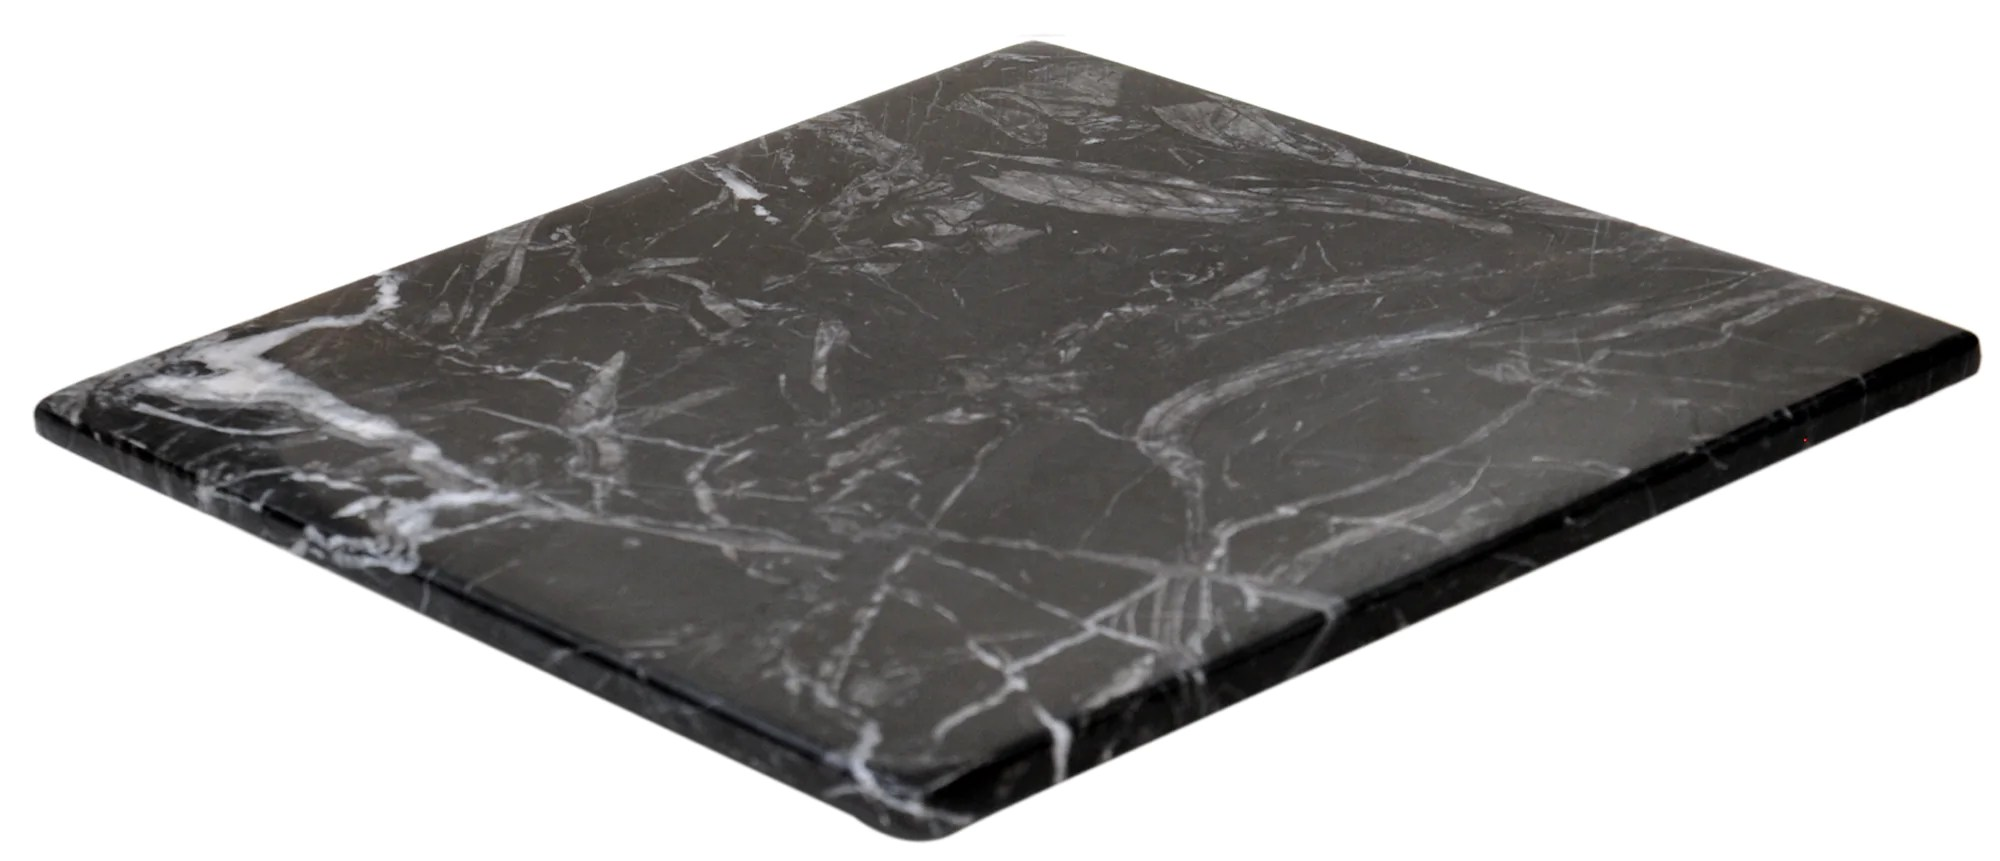 Small Marble Cutting Board Black Marble Cheese Board Works As A Small Cutting Board